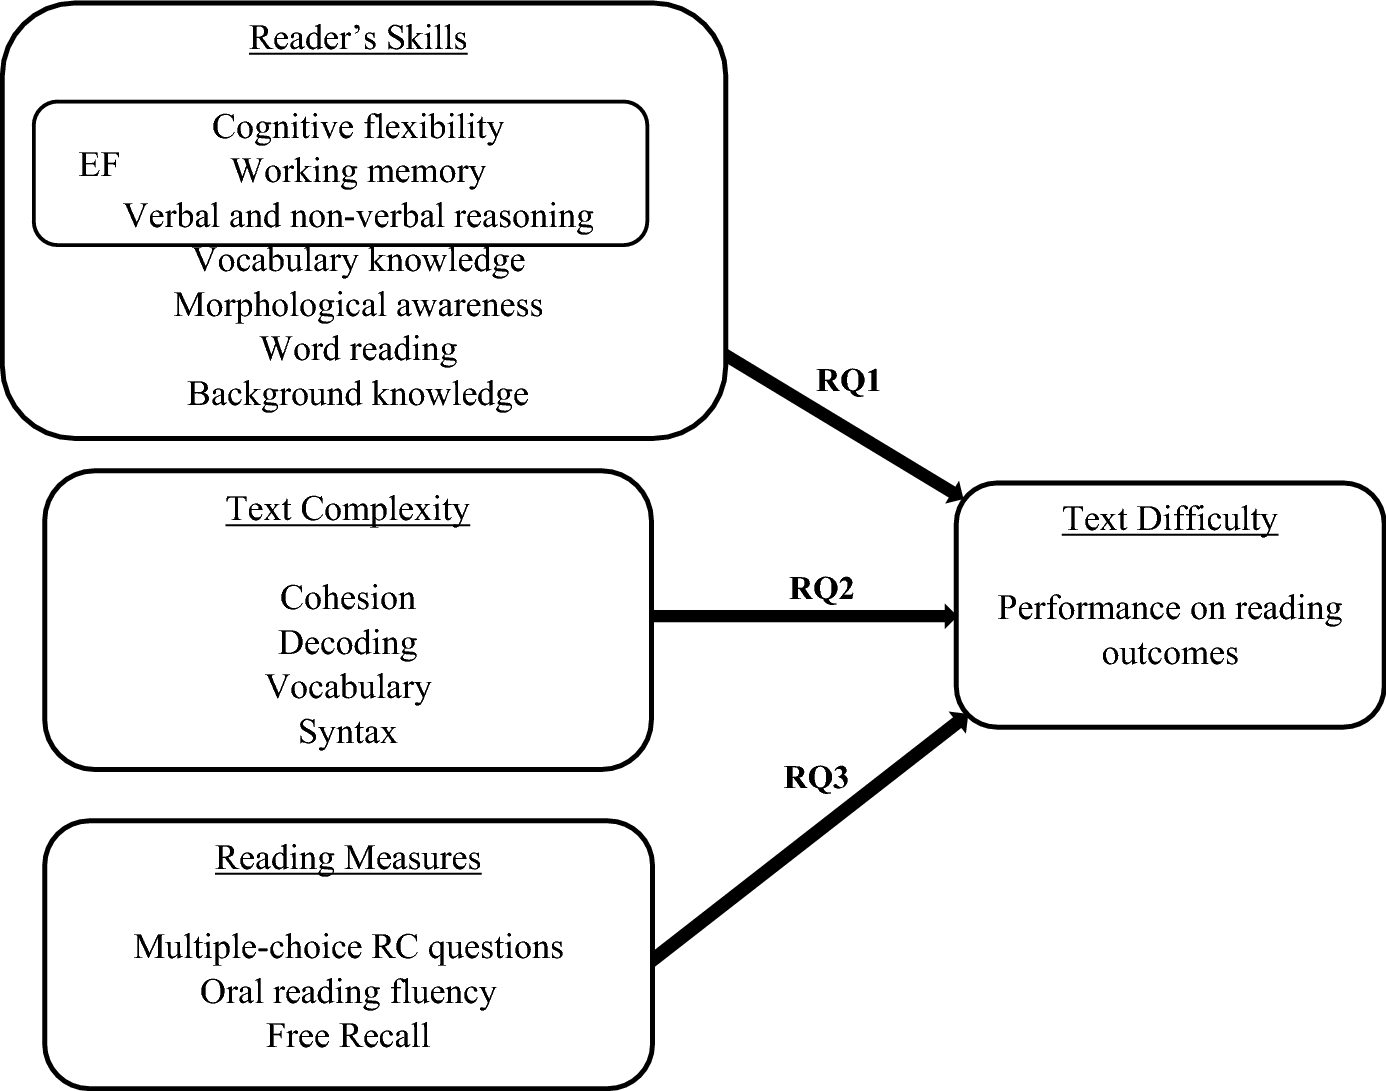 Understanding the influence of text complexity and question